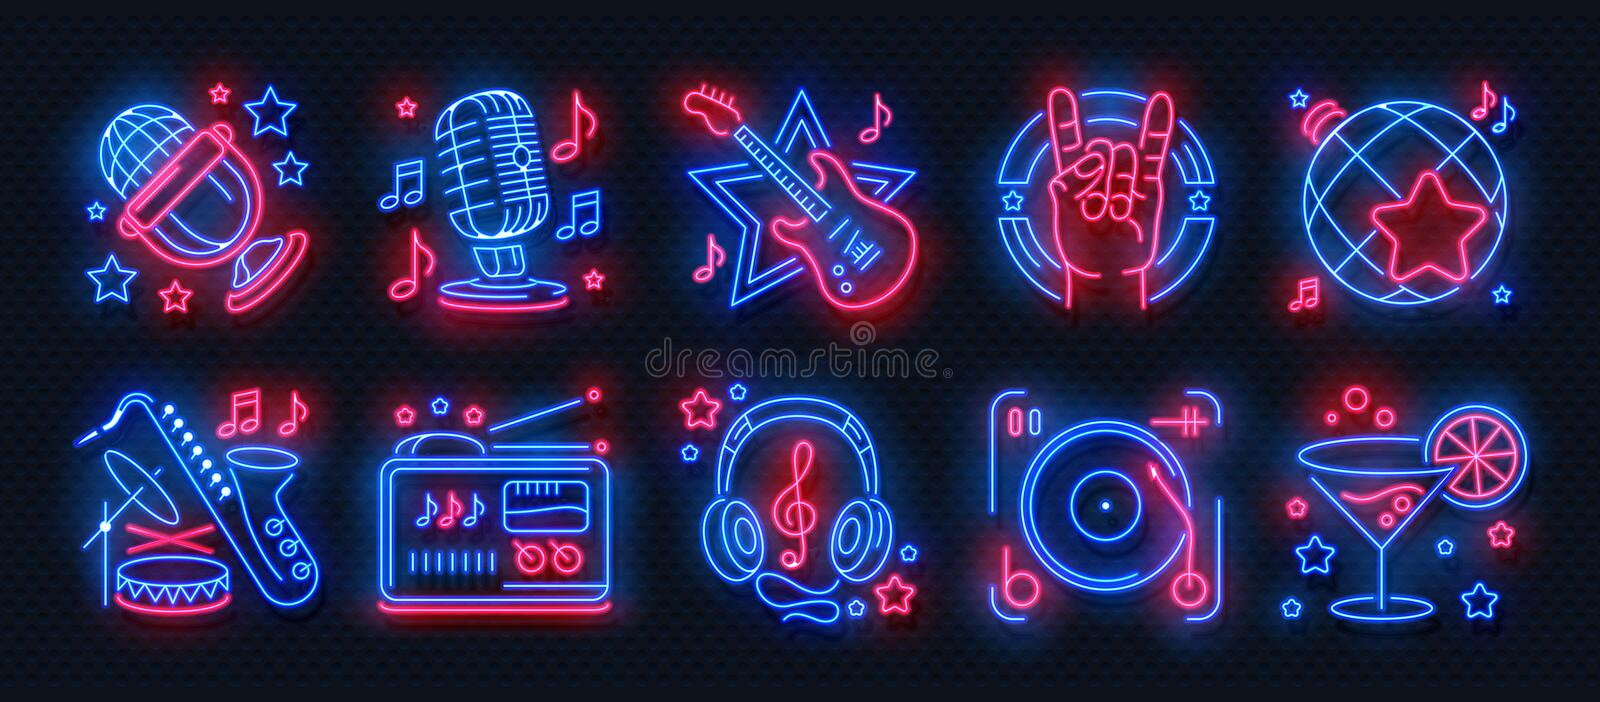 Neon party icons. Dance music karaoke light signs, glowing concert banner, rock bar disco poster. Vector retro night stock illustration